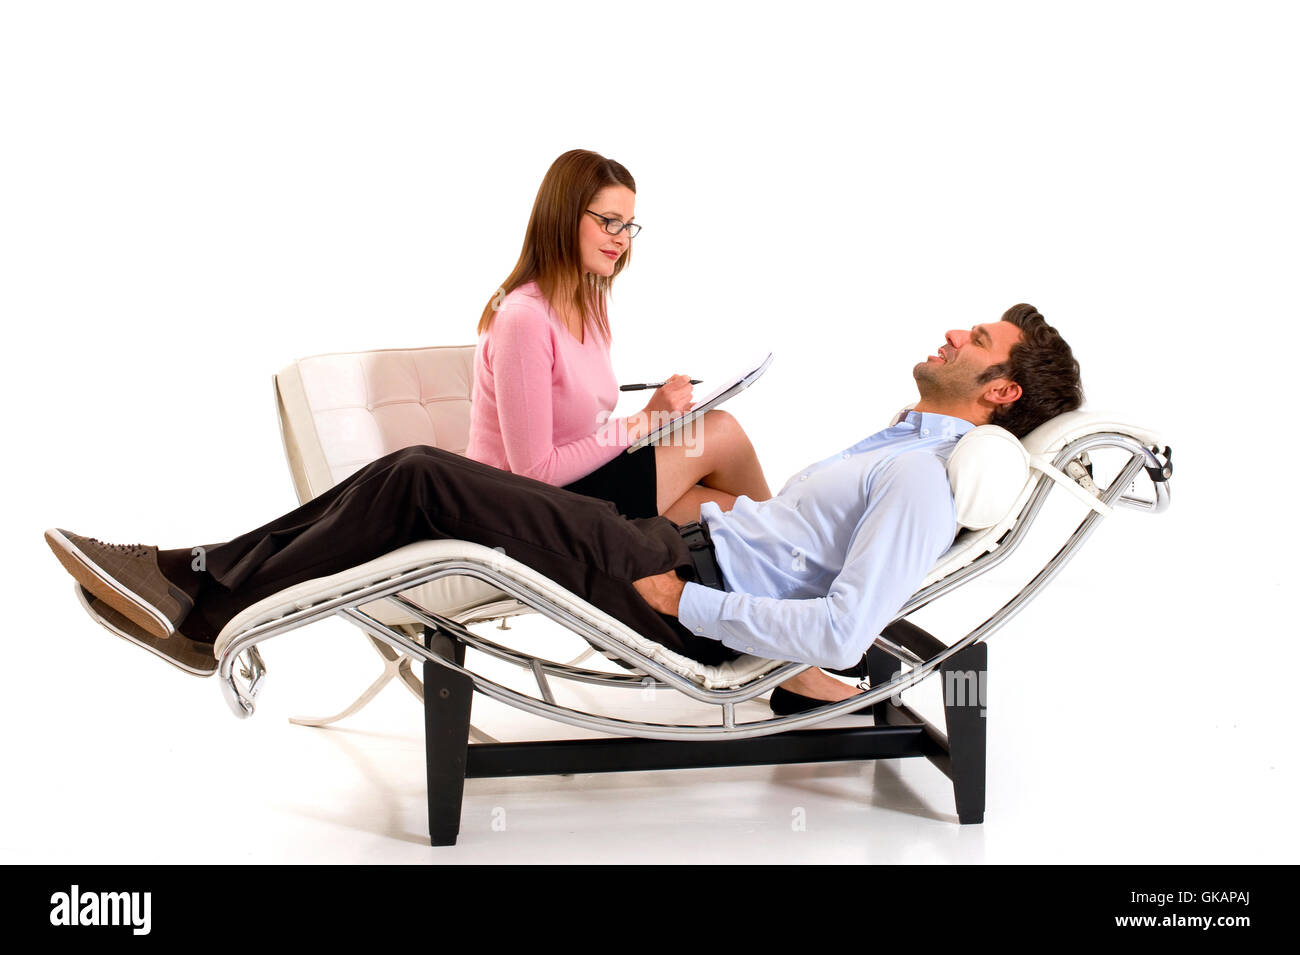 doctor physician medic - Stock Image